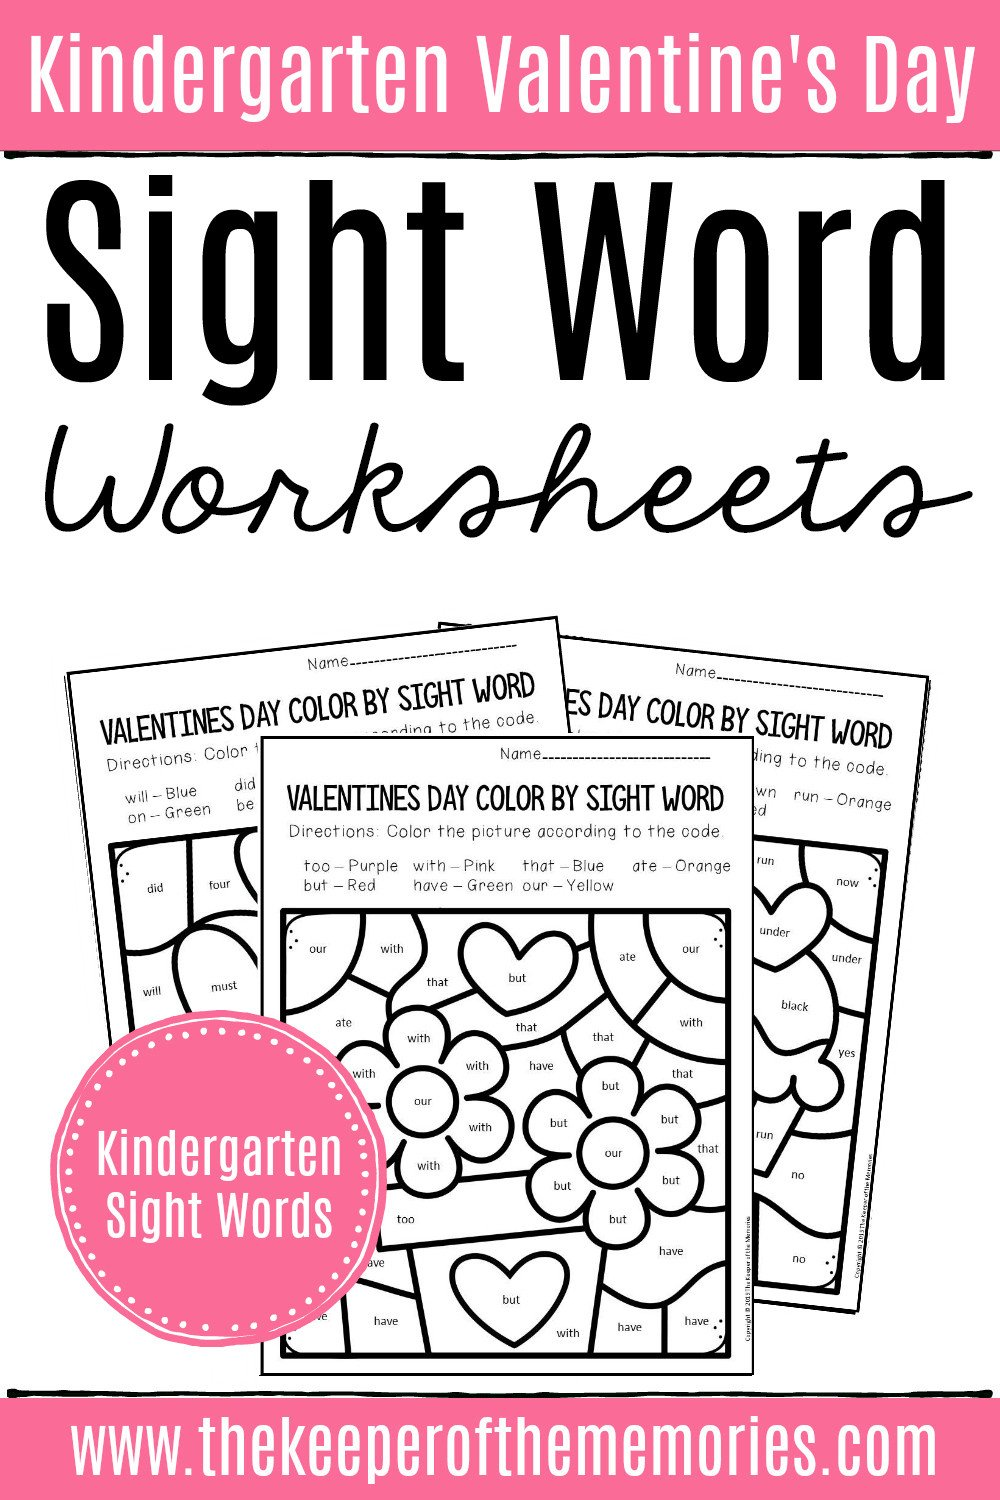 Free Valentine Worksheets for Kindergarten Color by Sight Word Valentine S Day Kindergarten Worksheets